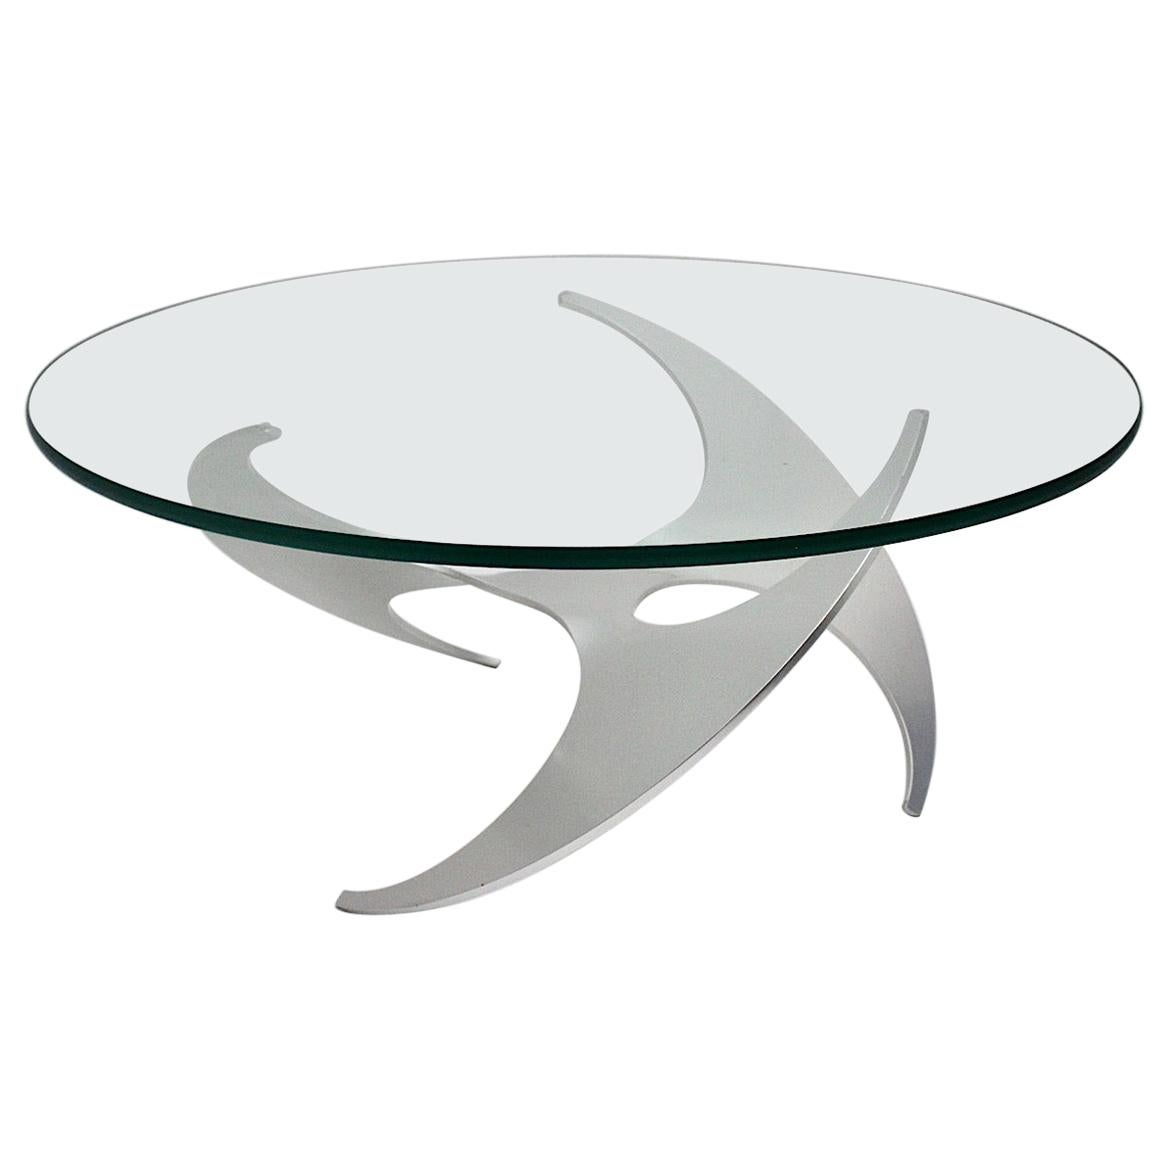 Space Age Vintage Silver Aluminum Glass Coffee Table Sofa Table Knut Hesterberg